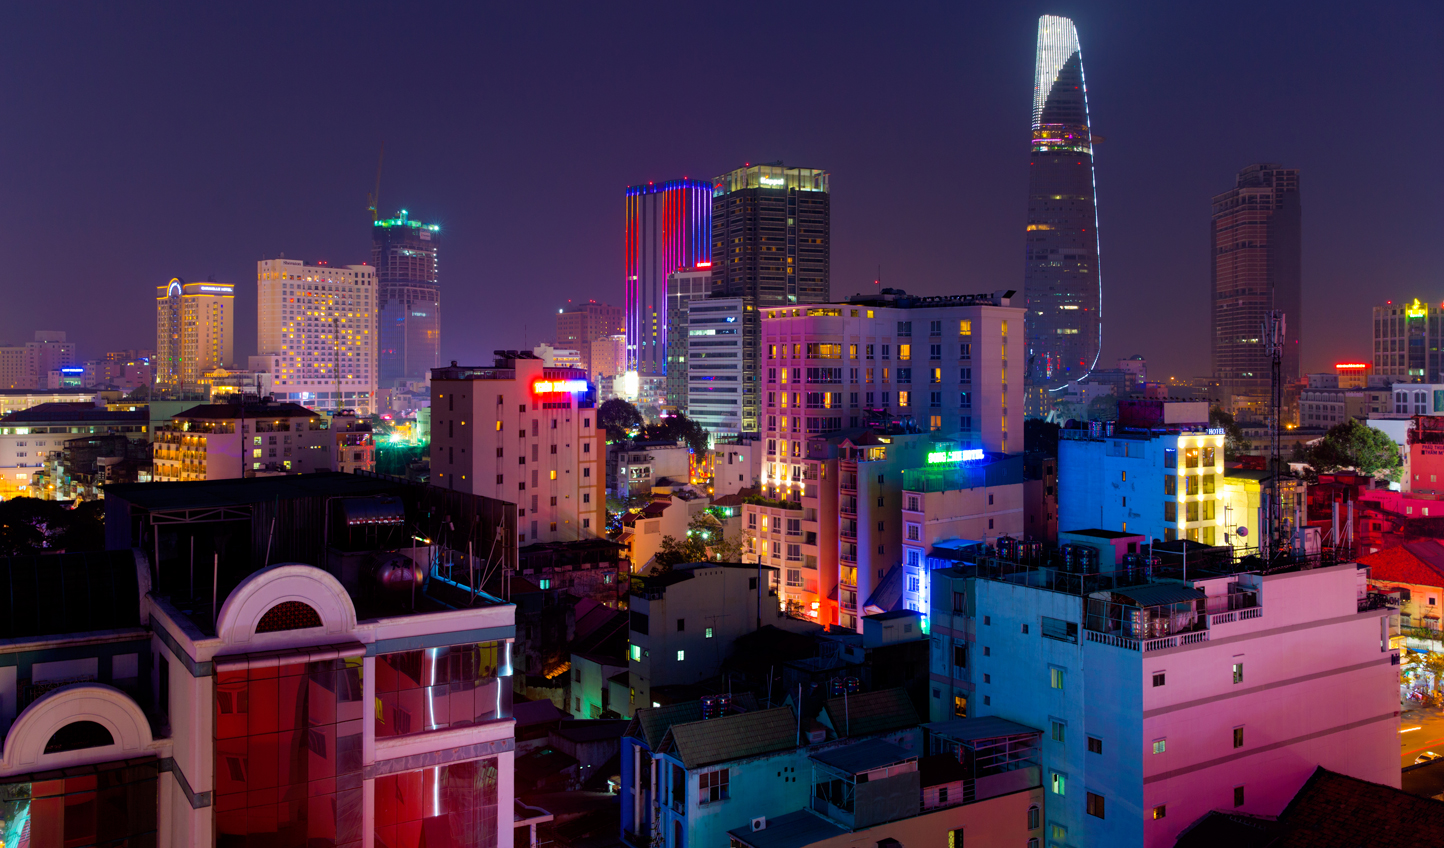 Just like that, the sun goes down on Saigon and your time in Vietnam